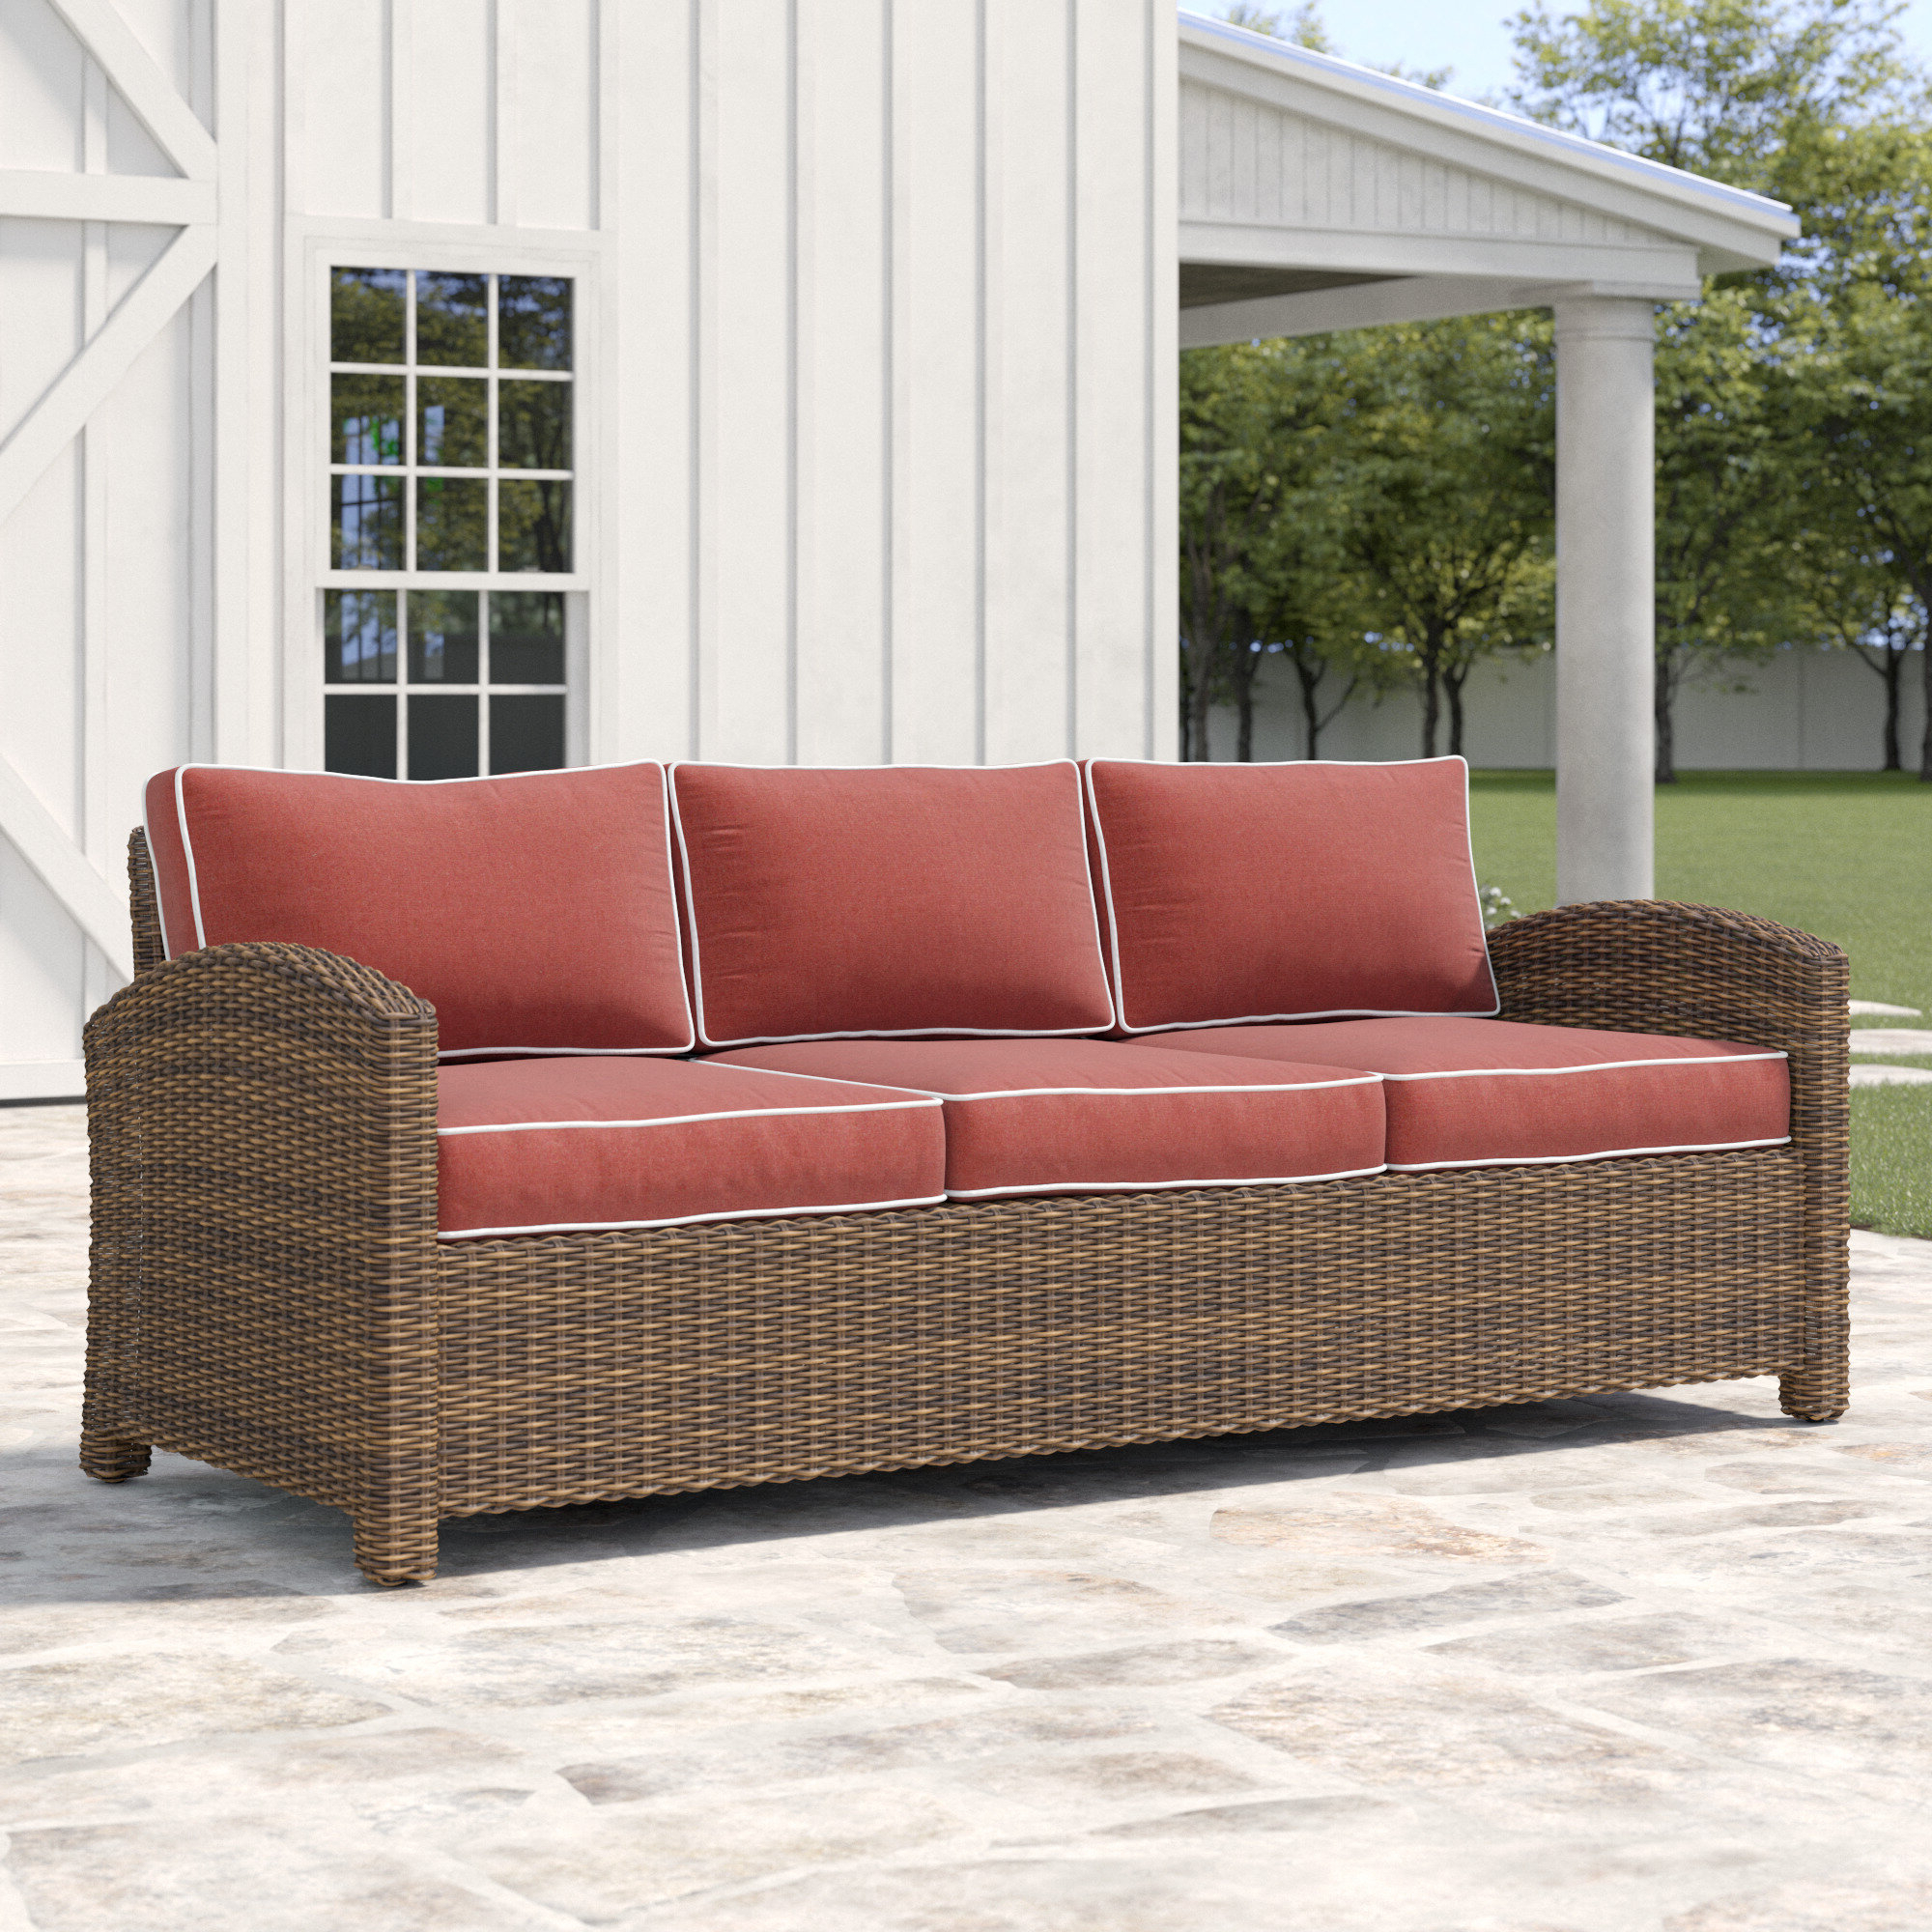 Most Recent Lawson Patio Sofa With Cushions Inside Lawson Patio Sofas With Cushions (View 2 of 25)